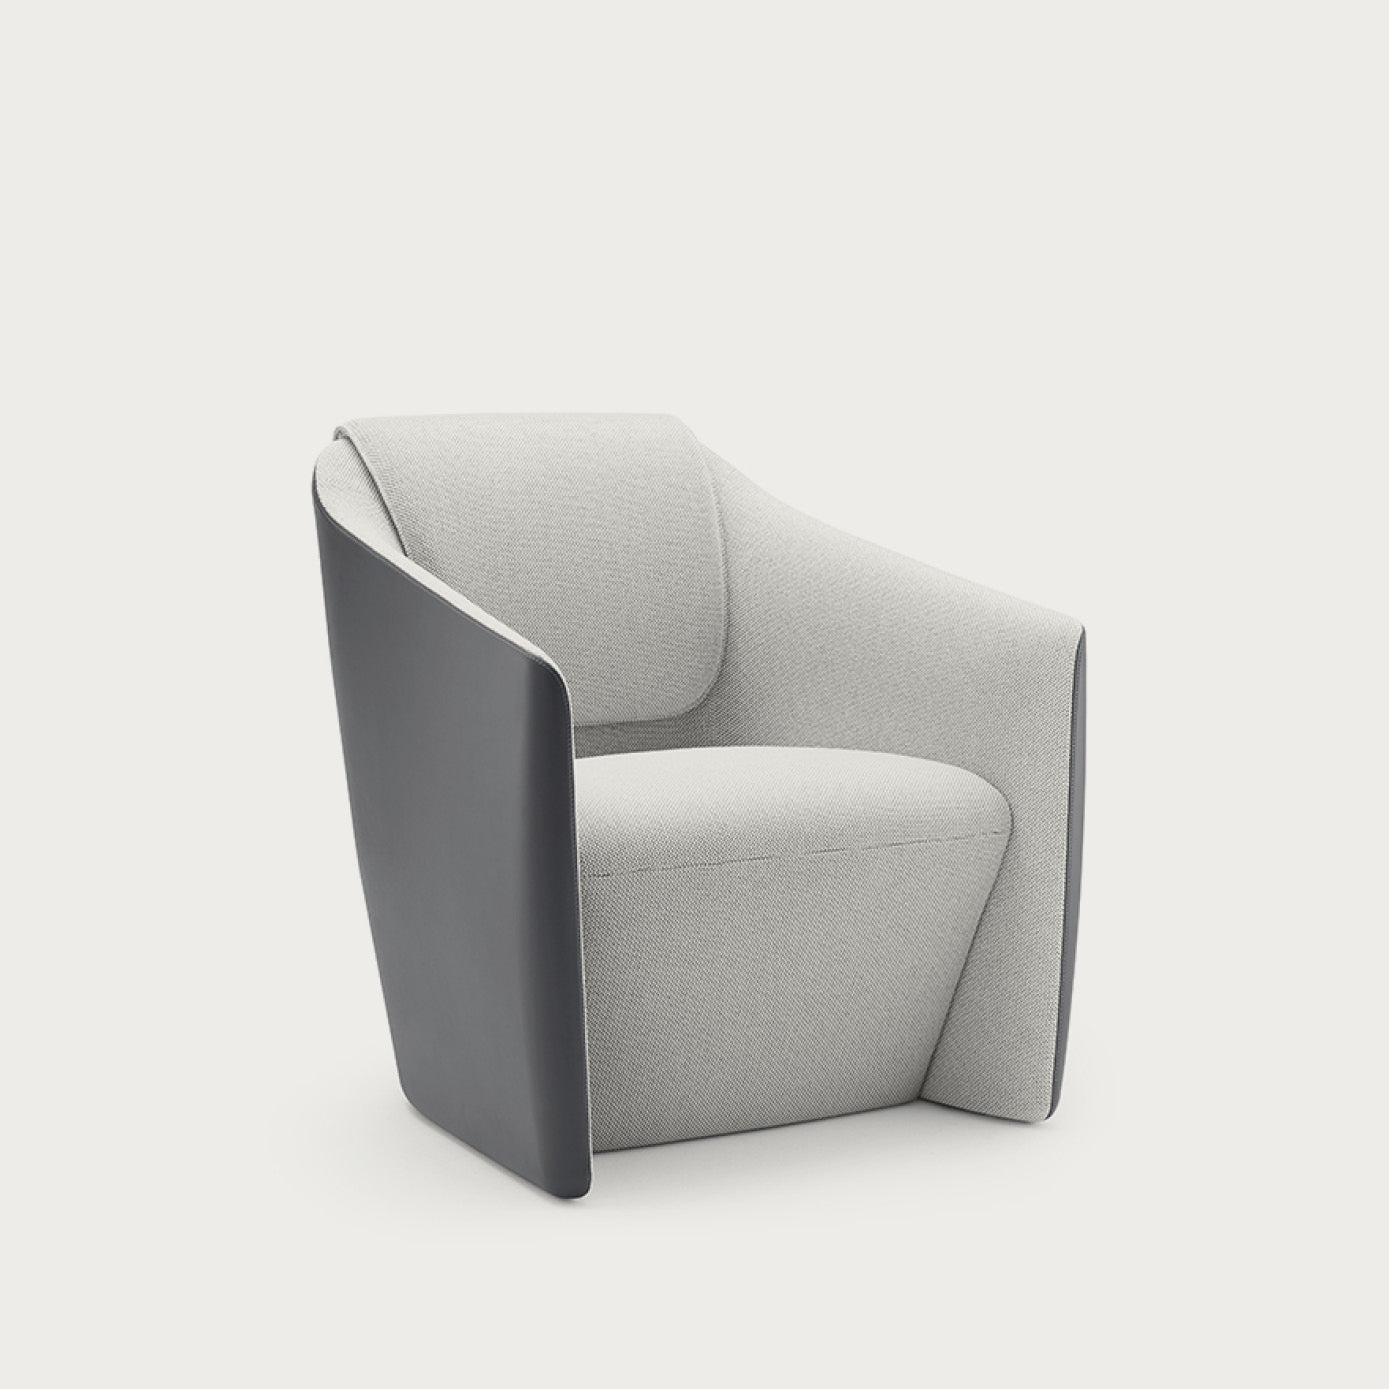 DNA Lounge Chair